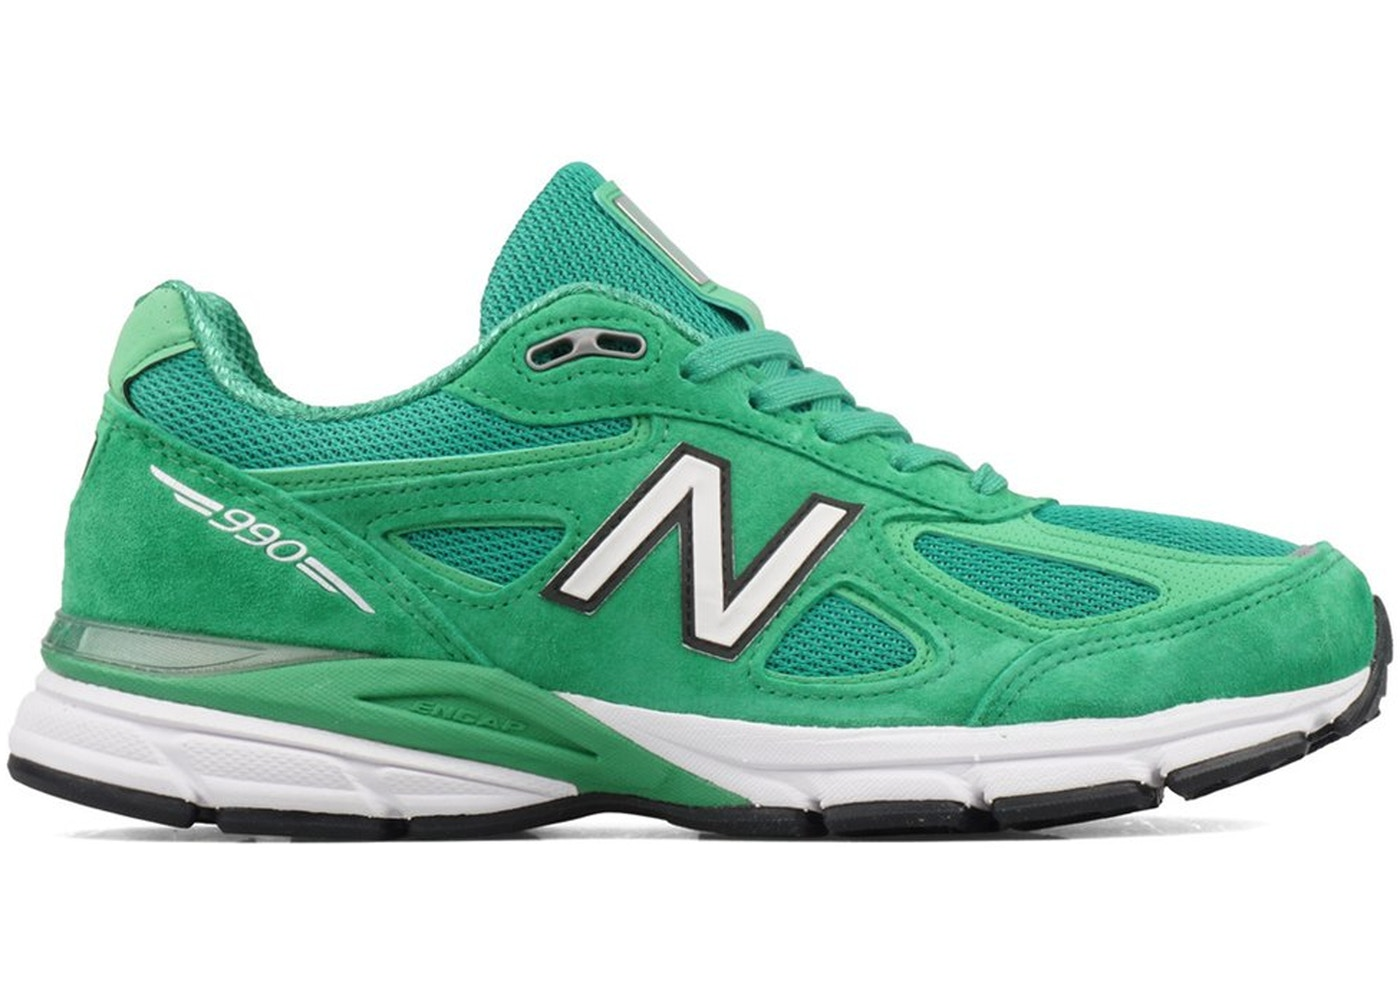 the latest 0fb2b f4a99 New Balance Size 18 Shoes - Release Date